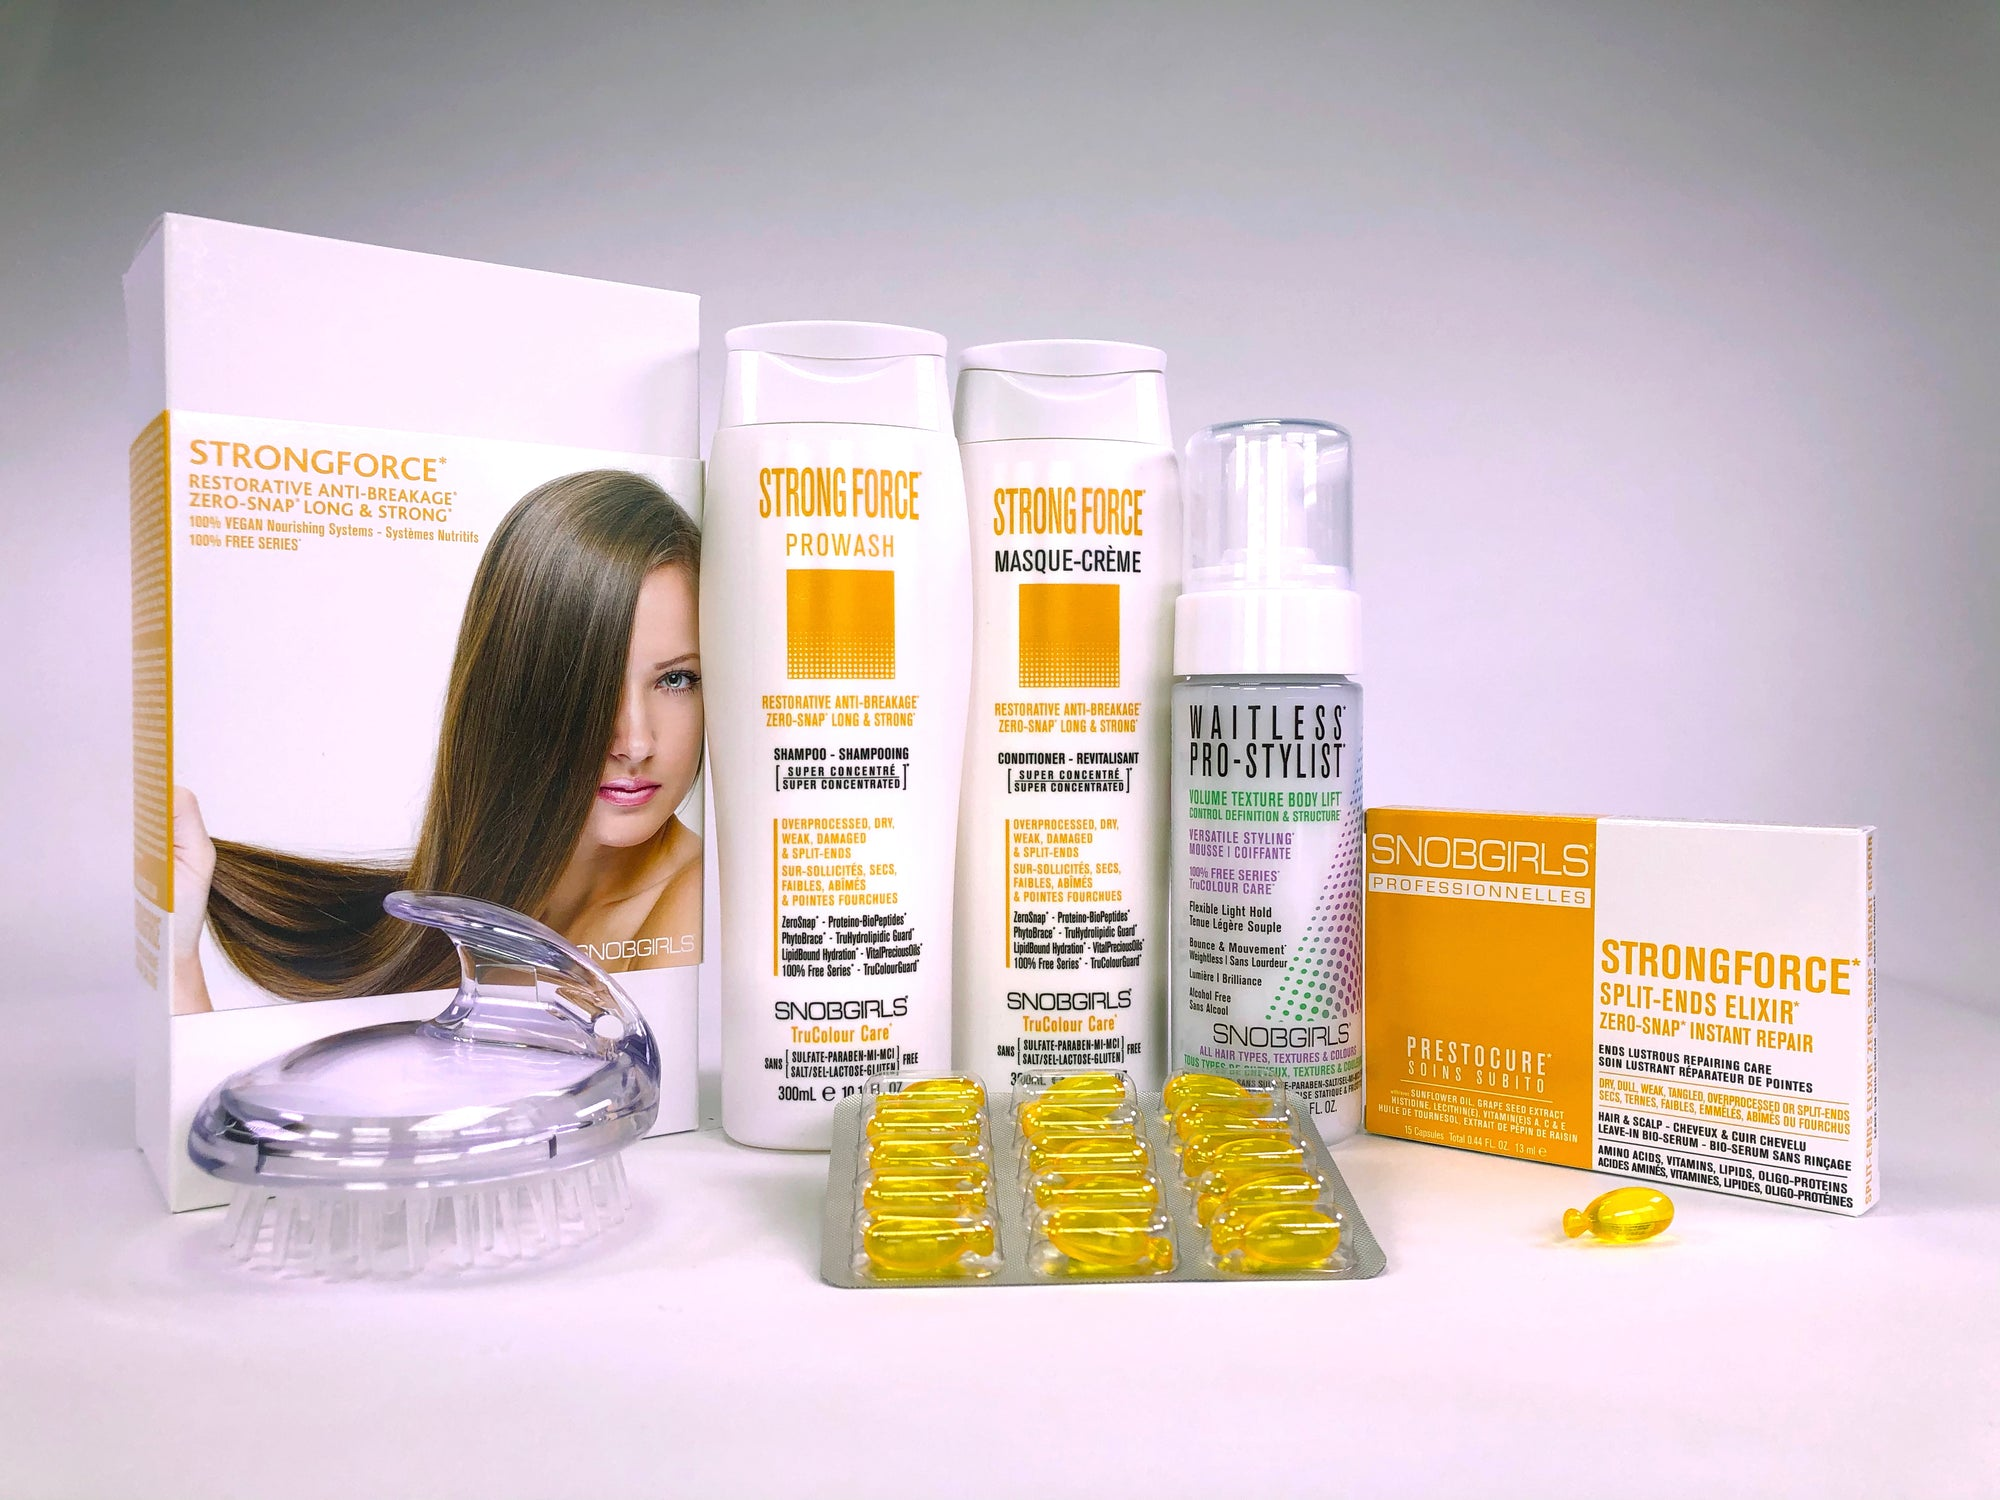 STRONGFORCE BOX RESTORATIVE ANTI-BREAKAGE Bundle - SNOBGIRLS Canada